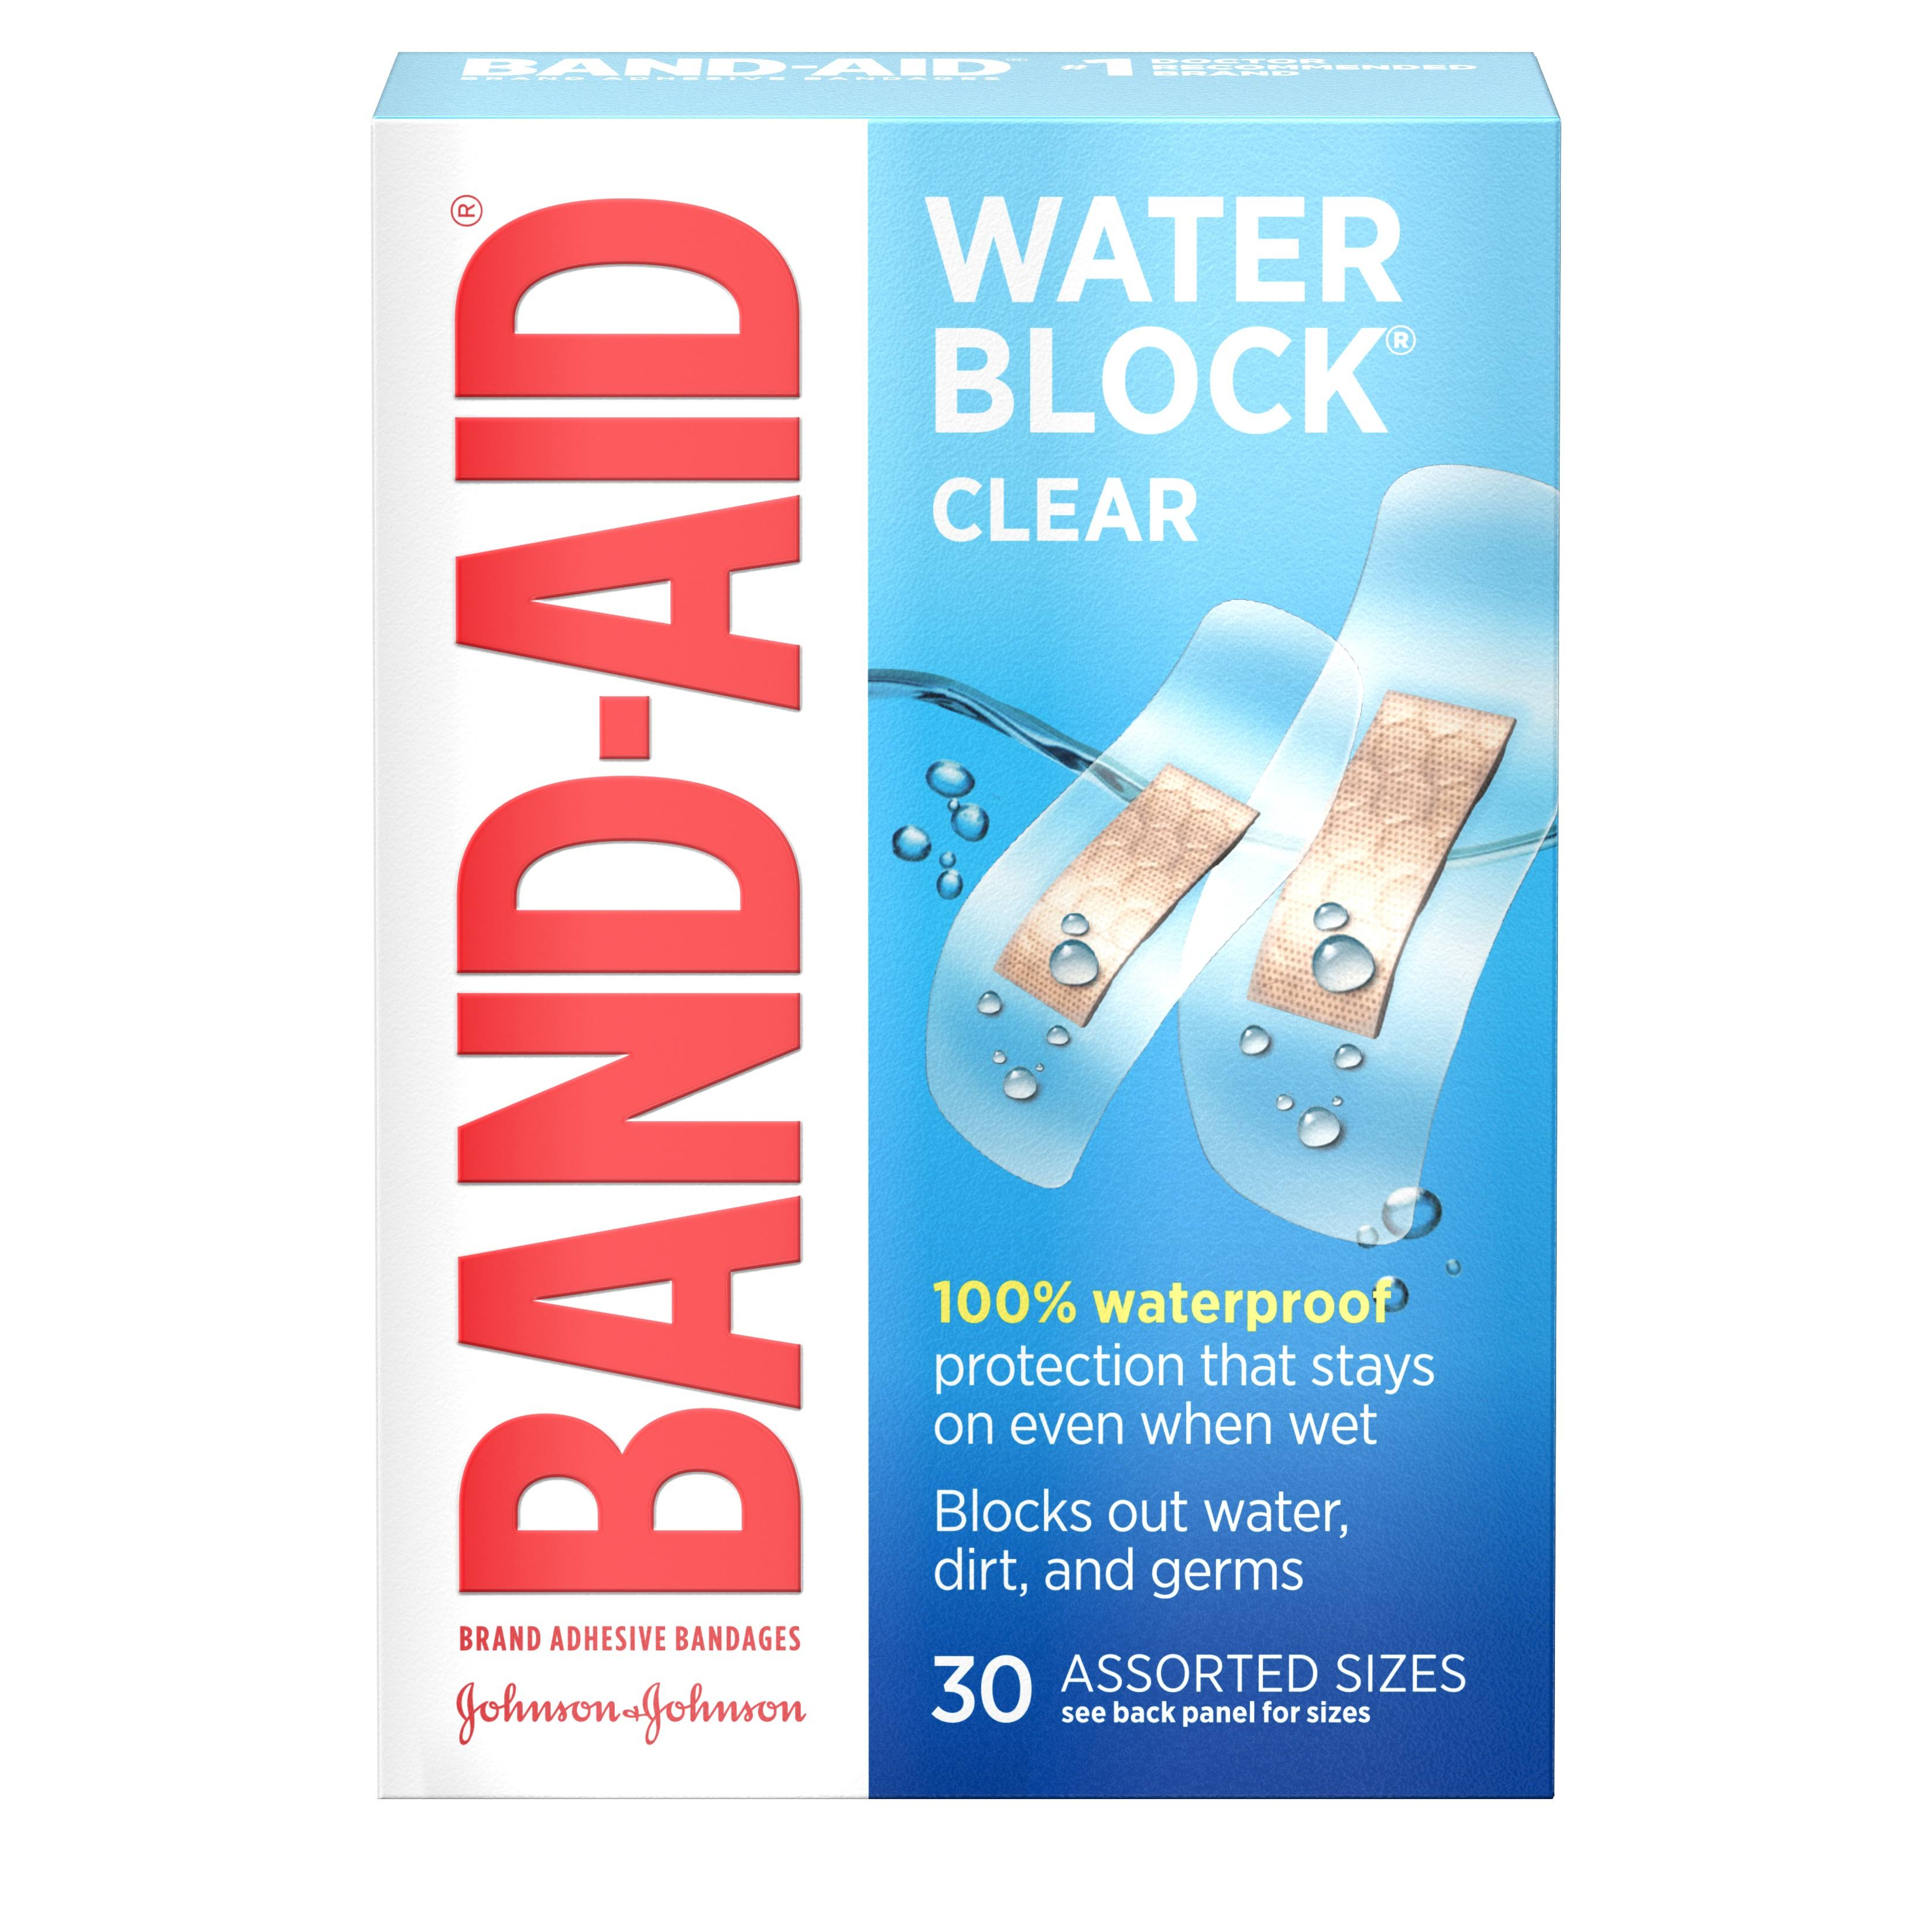 Band Aid Brand Adhesive Bandages Water Block Plus - Clear, 30 Assorted Sizes